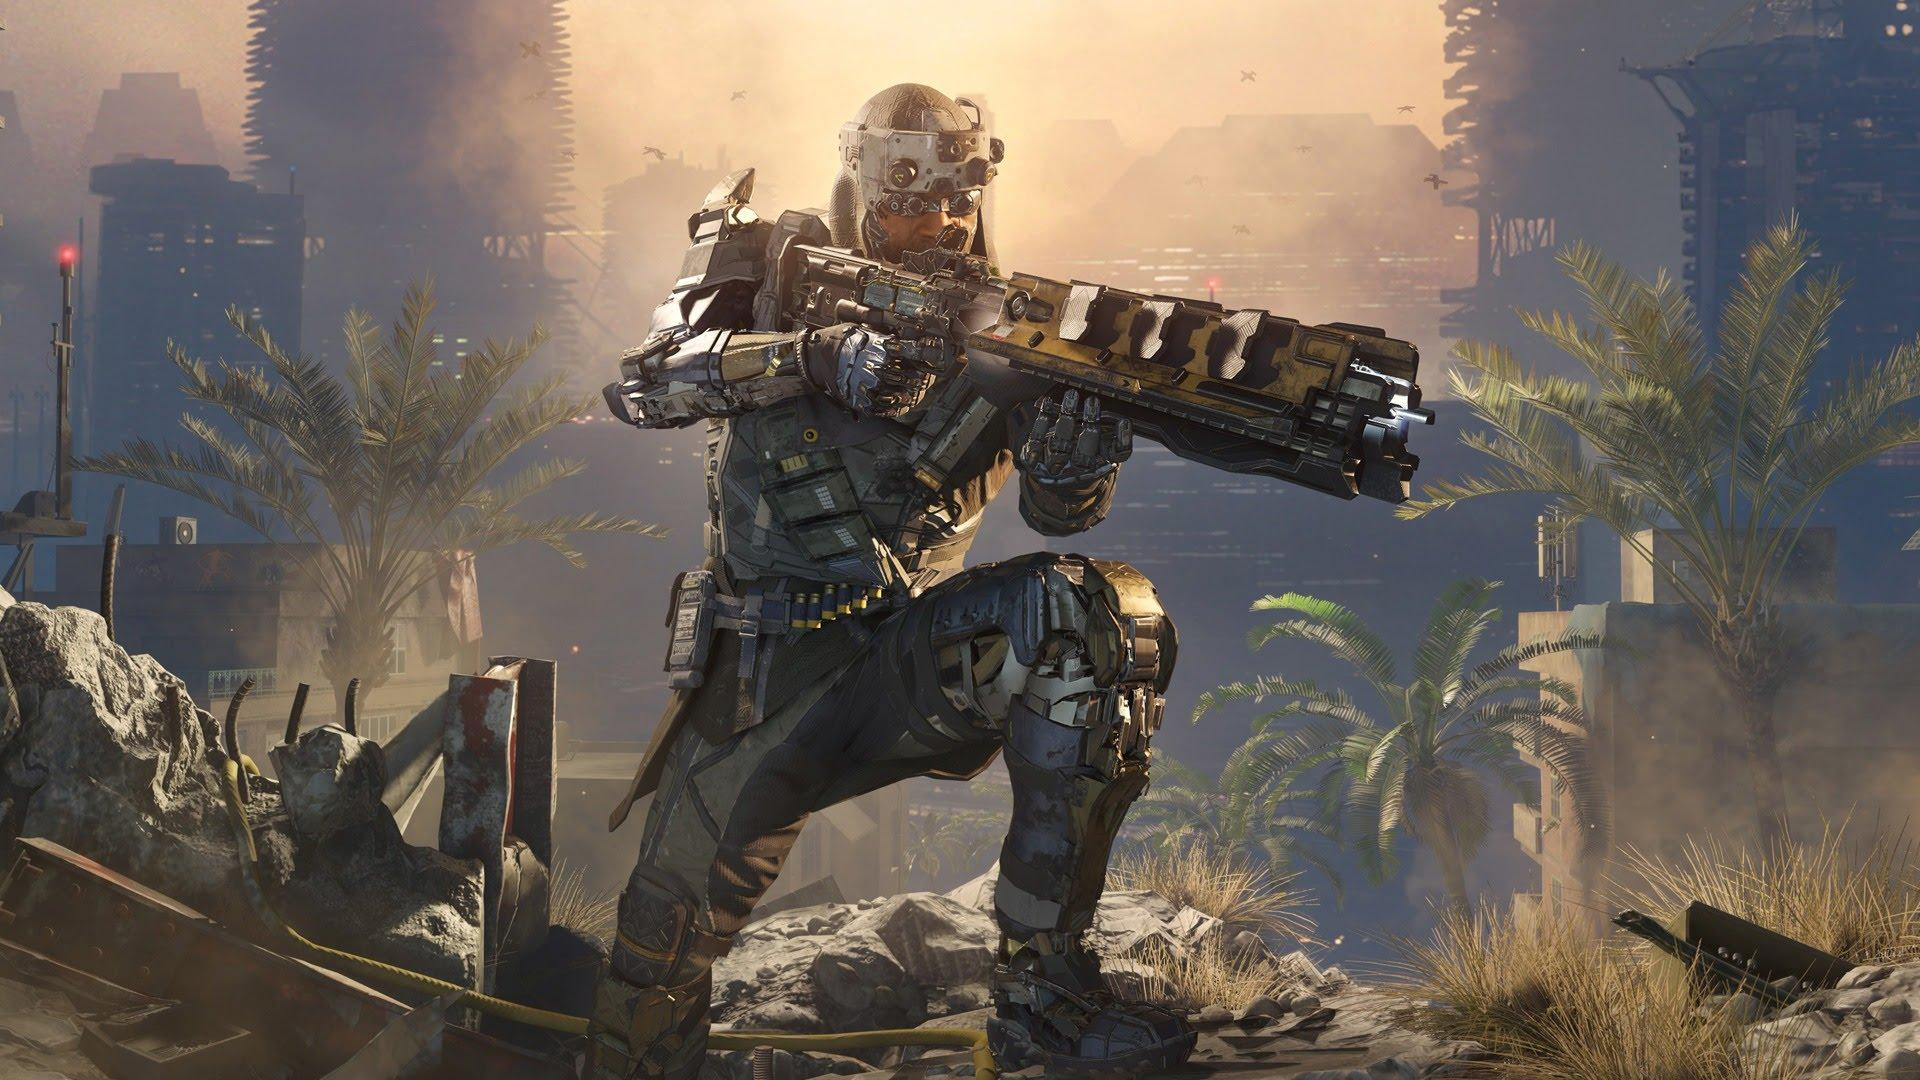 Call of Duty Blackout: Sniper tips, tricks and strategy